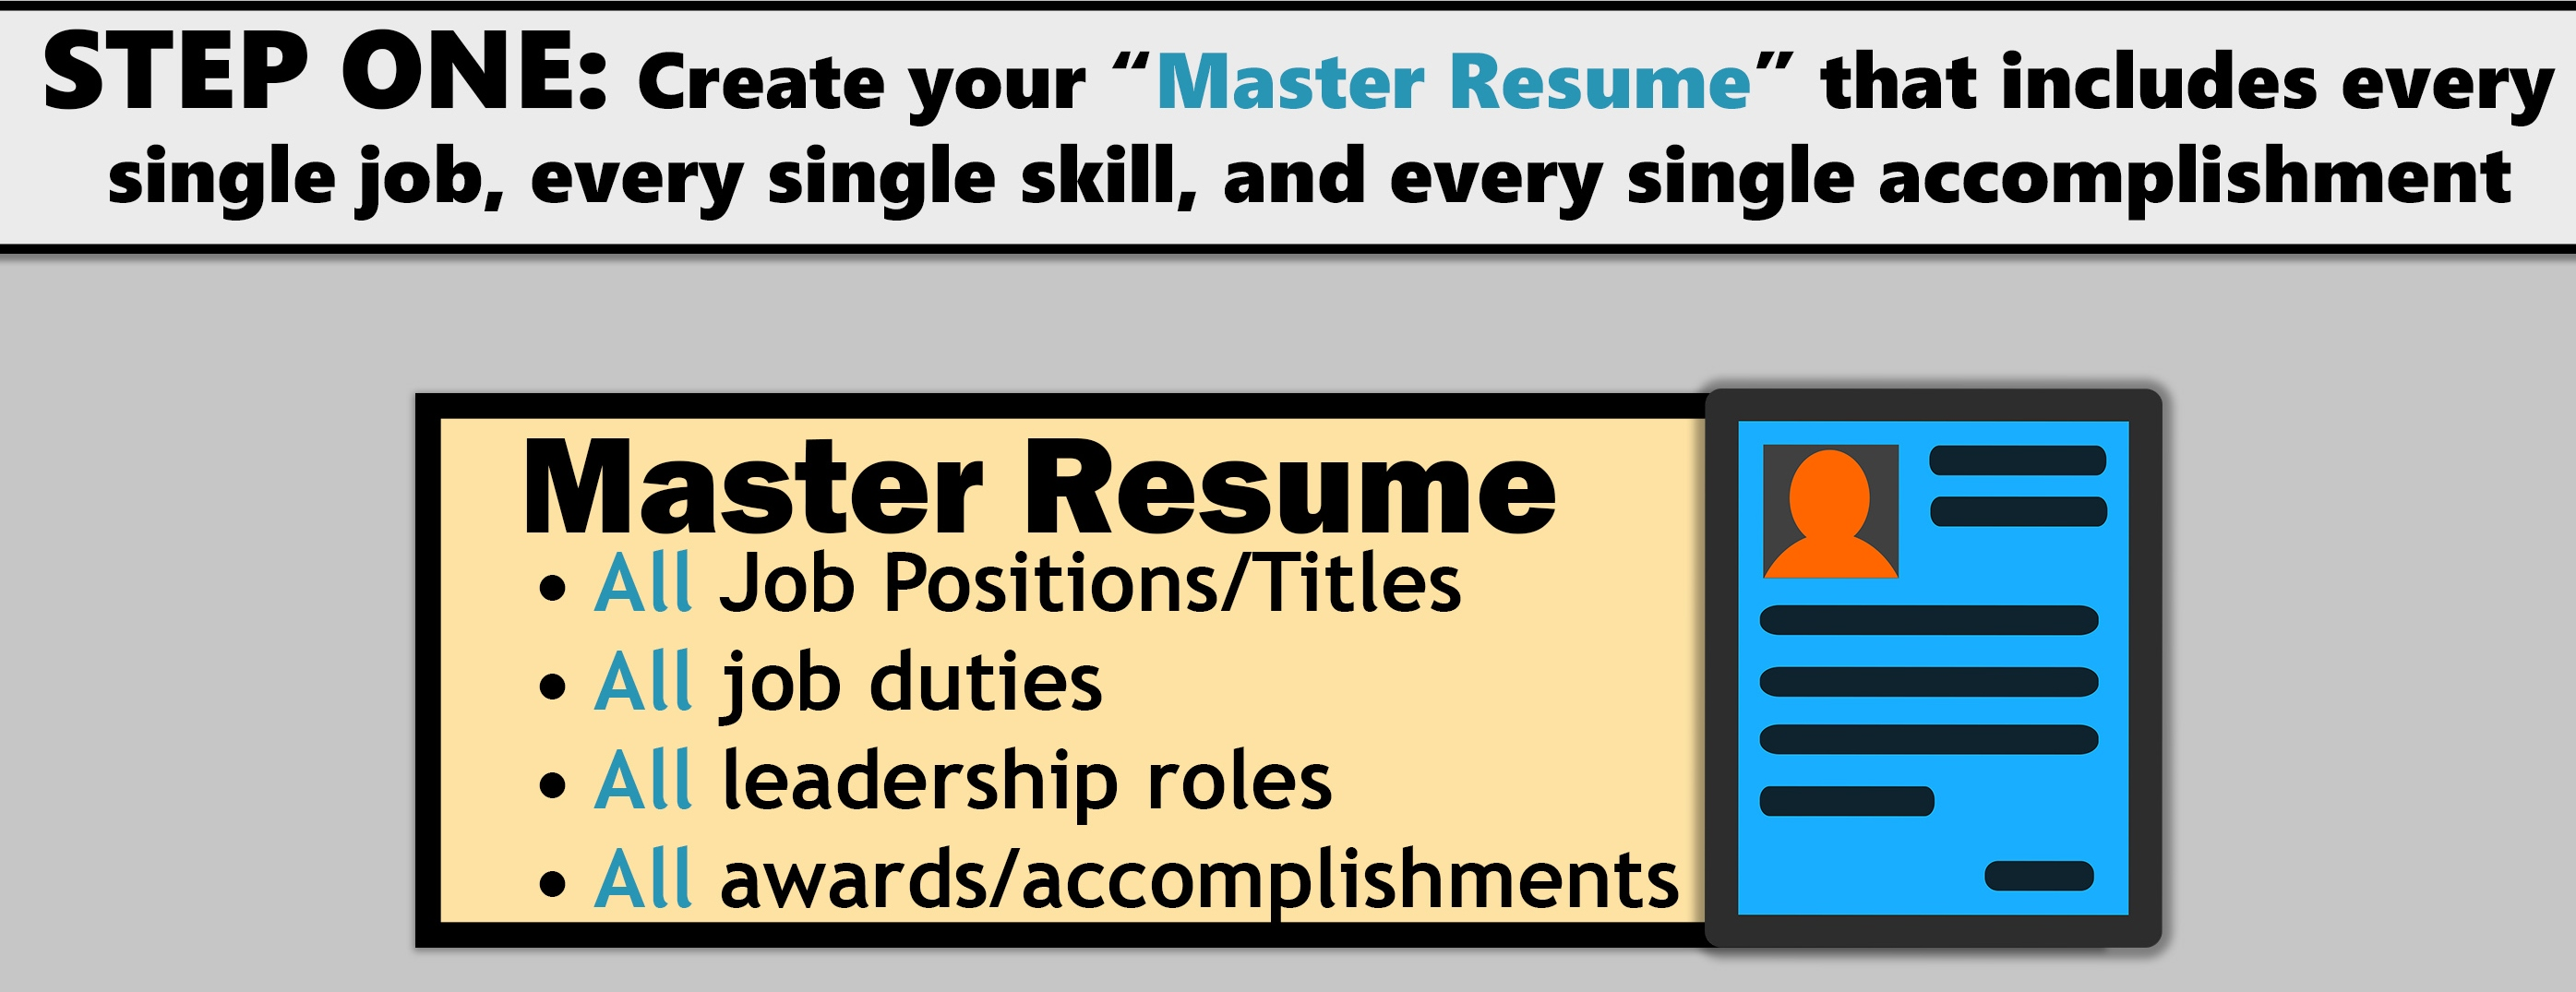 tailored resume infographic step one